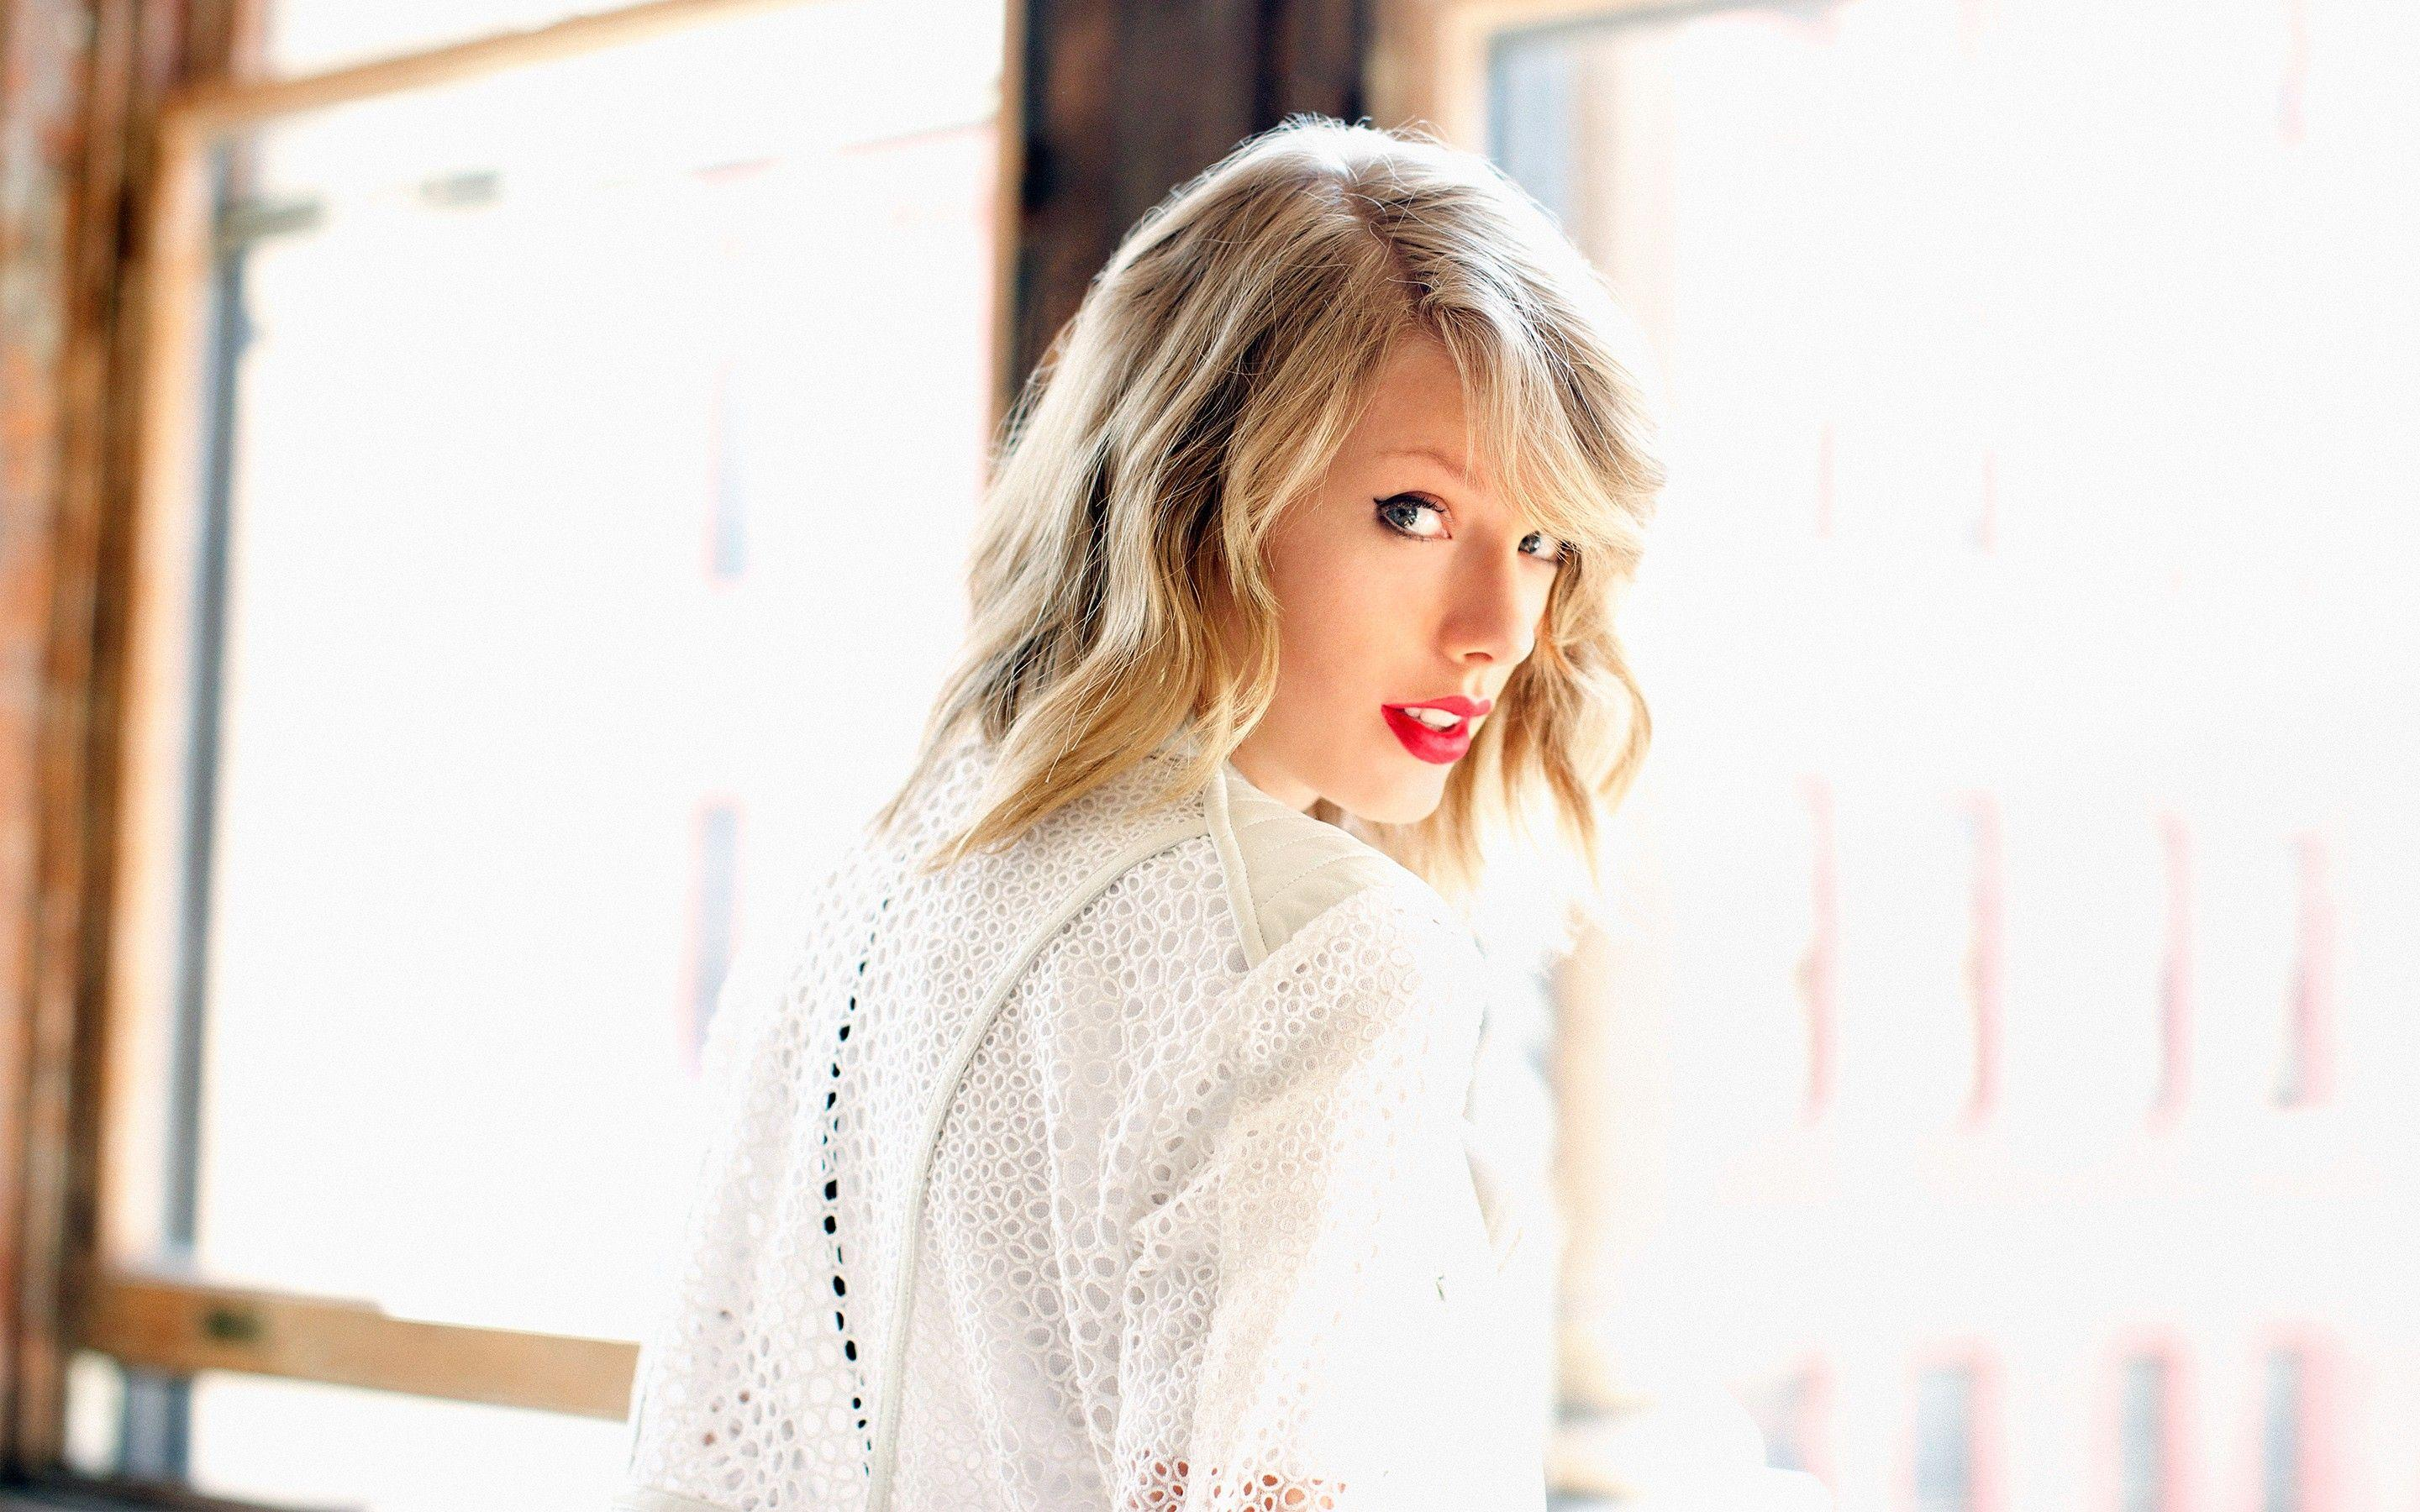 Taylor Swift Archives - This Must Be Pop This Must Be Pop